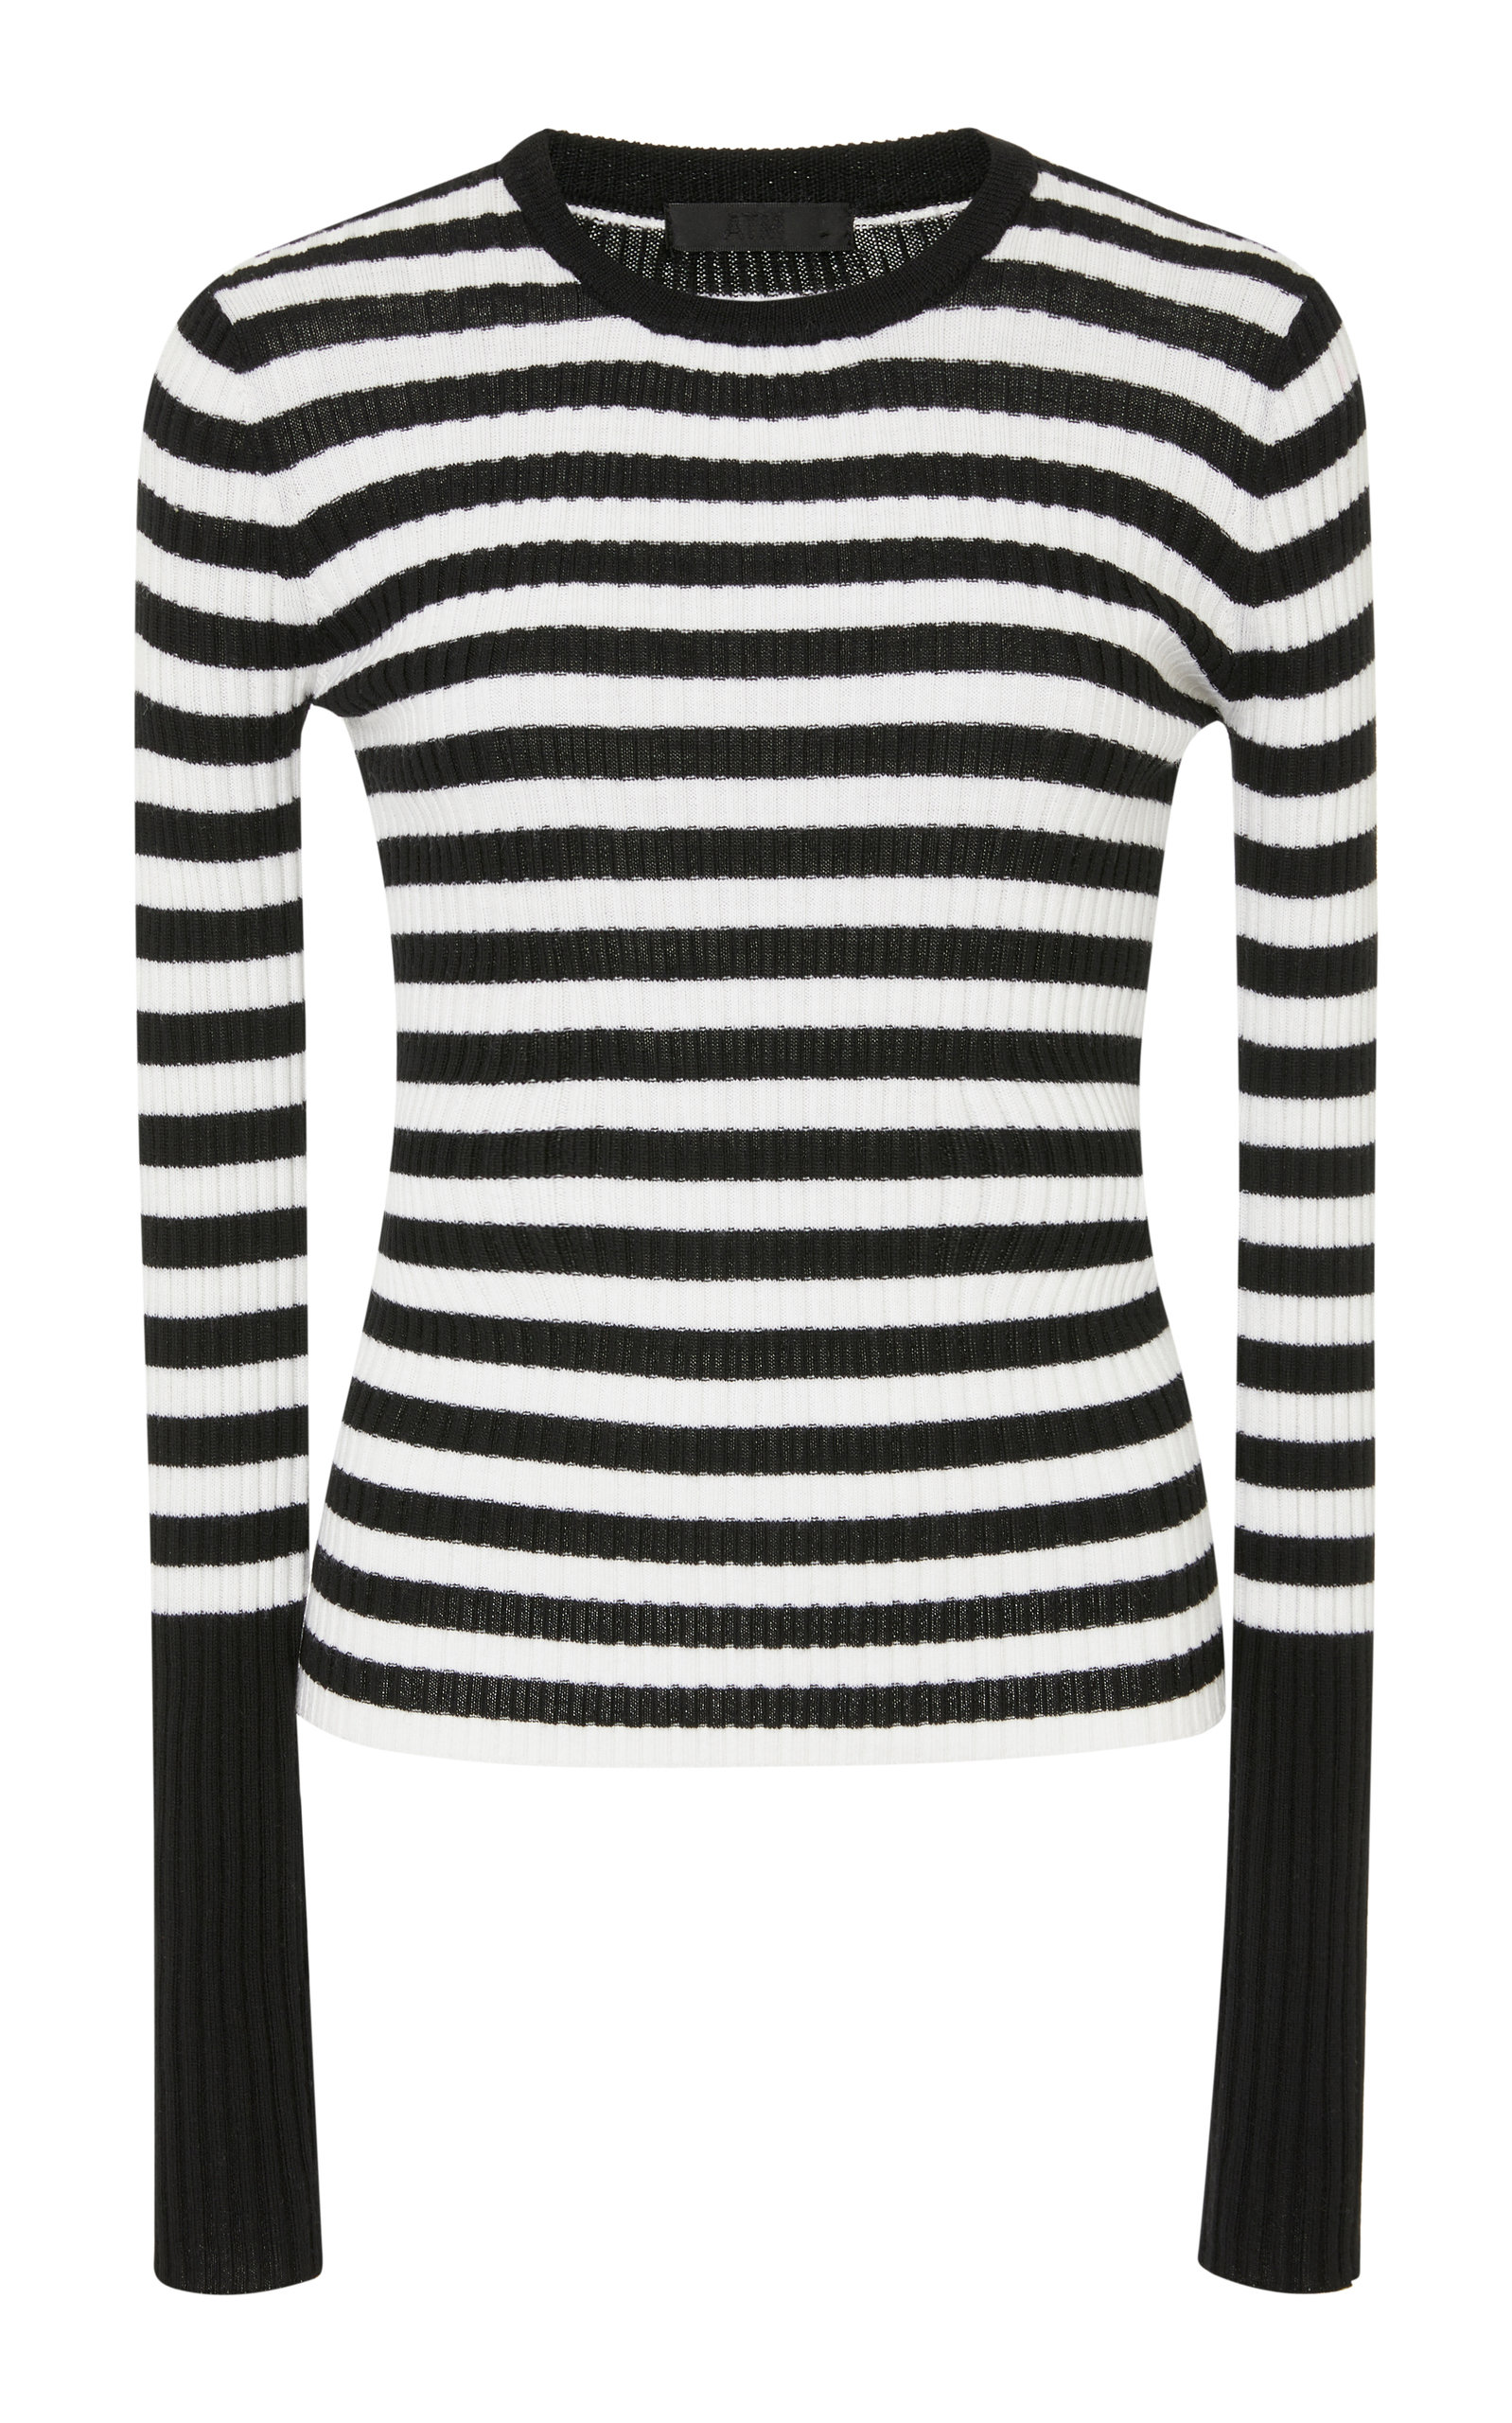 ATM ANTHONY THOMAS MELILLO Striped Merino Wool Rib-Knit Sweater Size Xs in Black